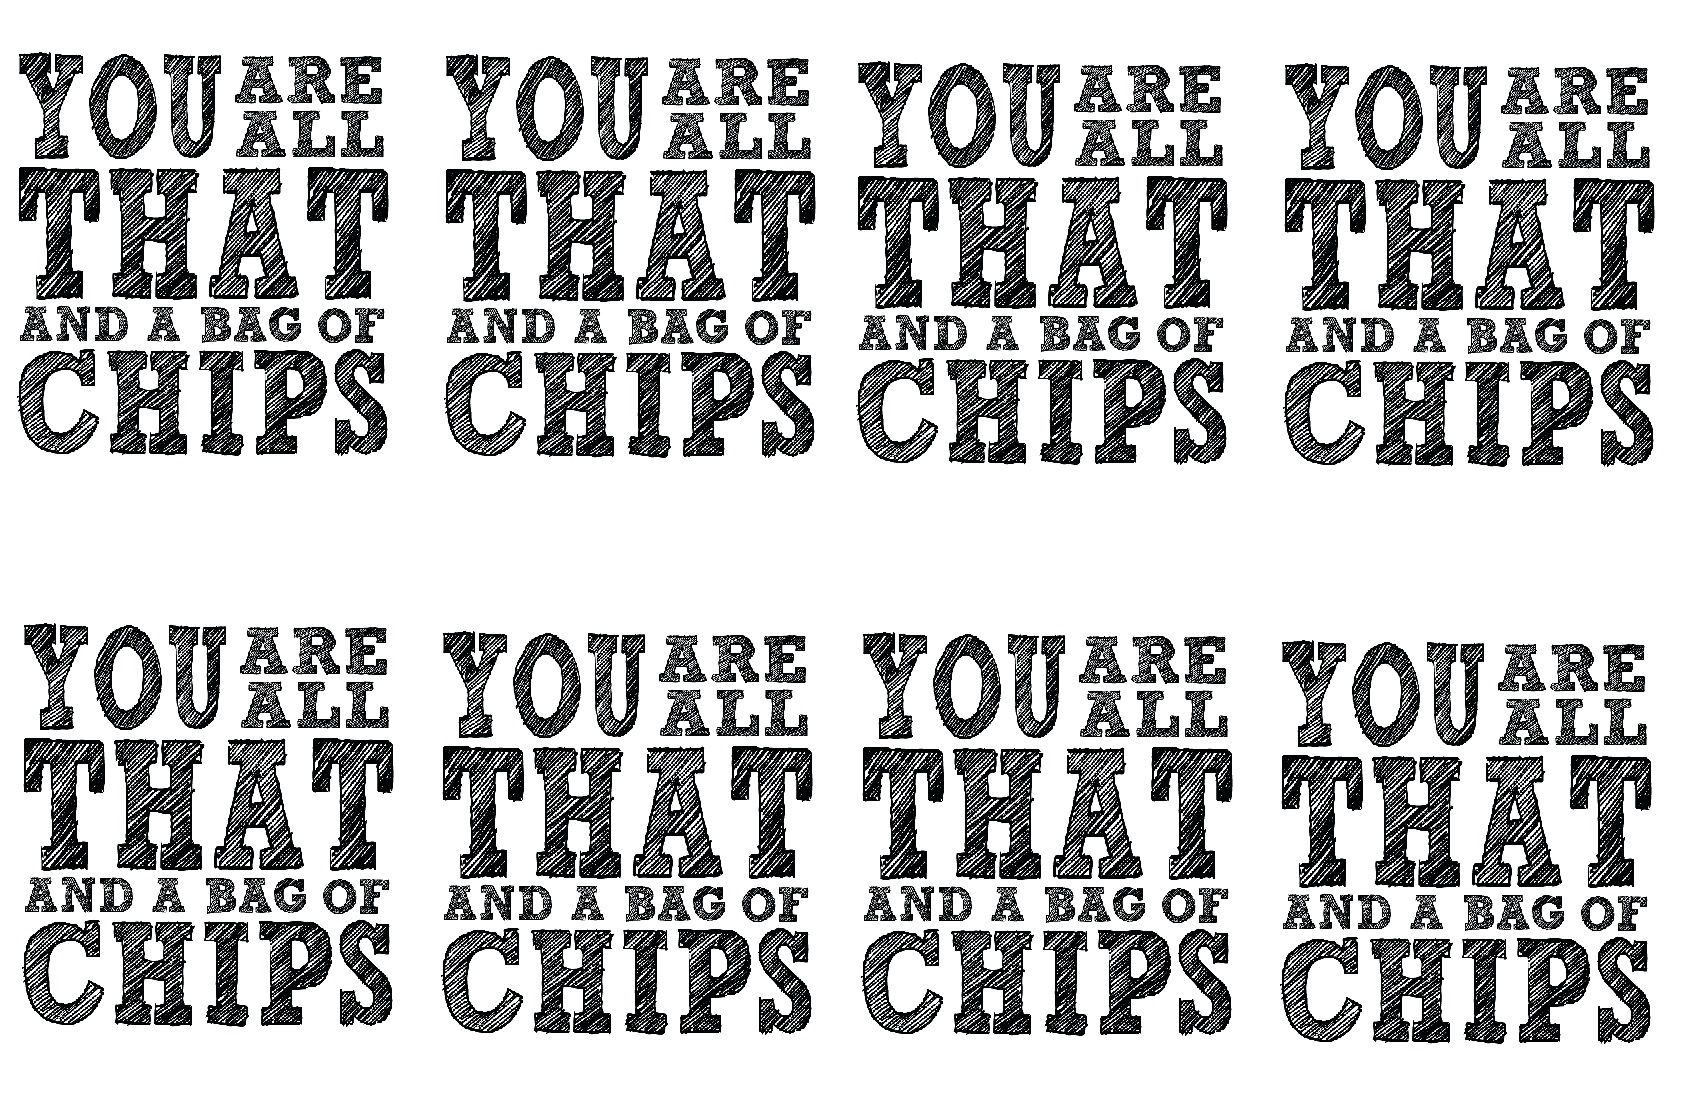 picture about You're All That and a Bag of Chips Printable named All That and a bag of chips - Chip bag present tag. Foolish